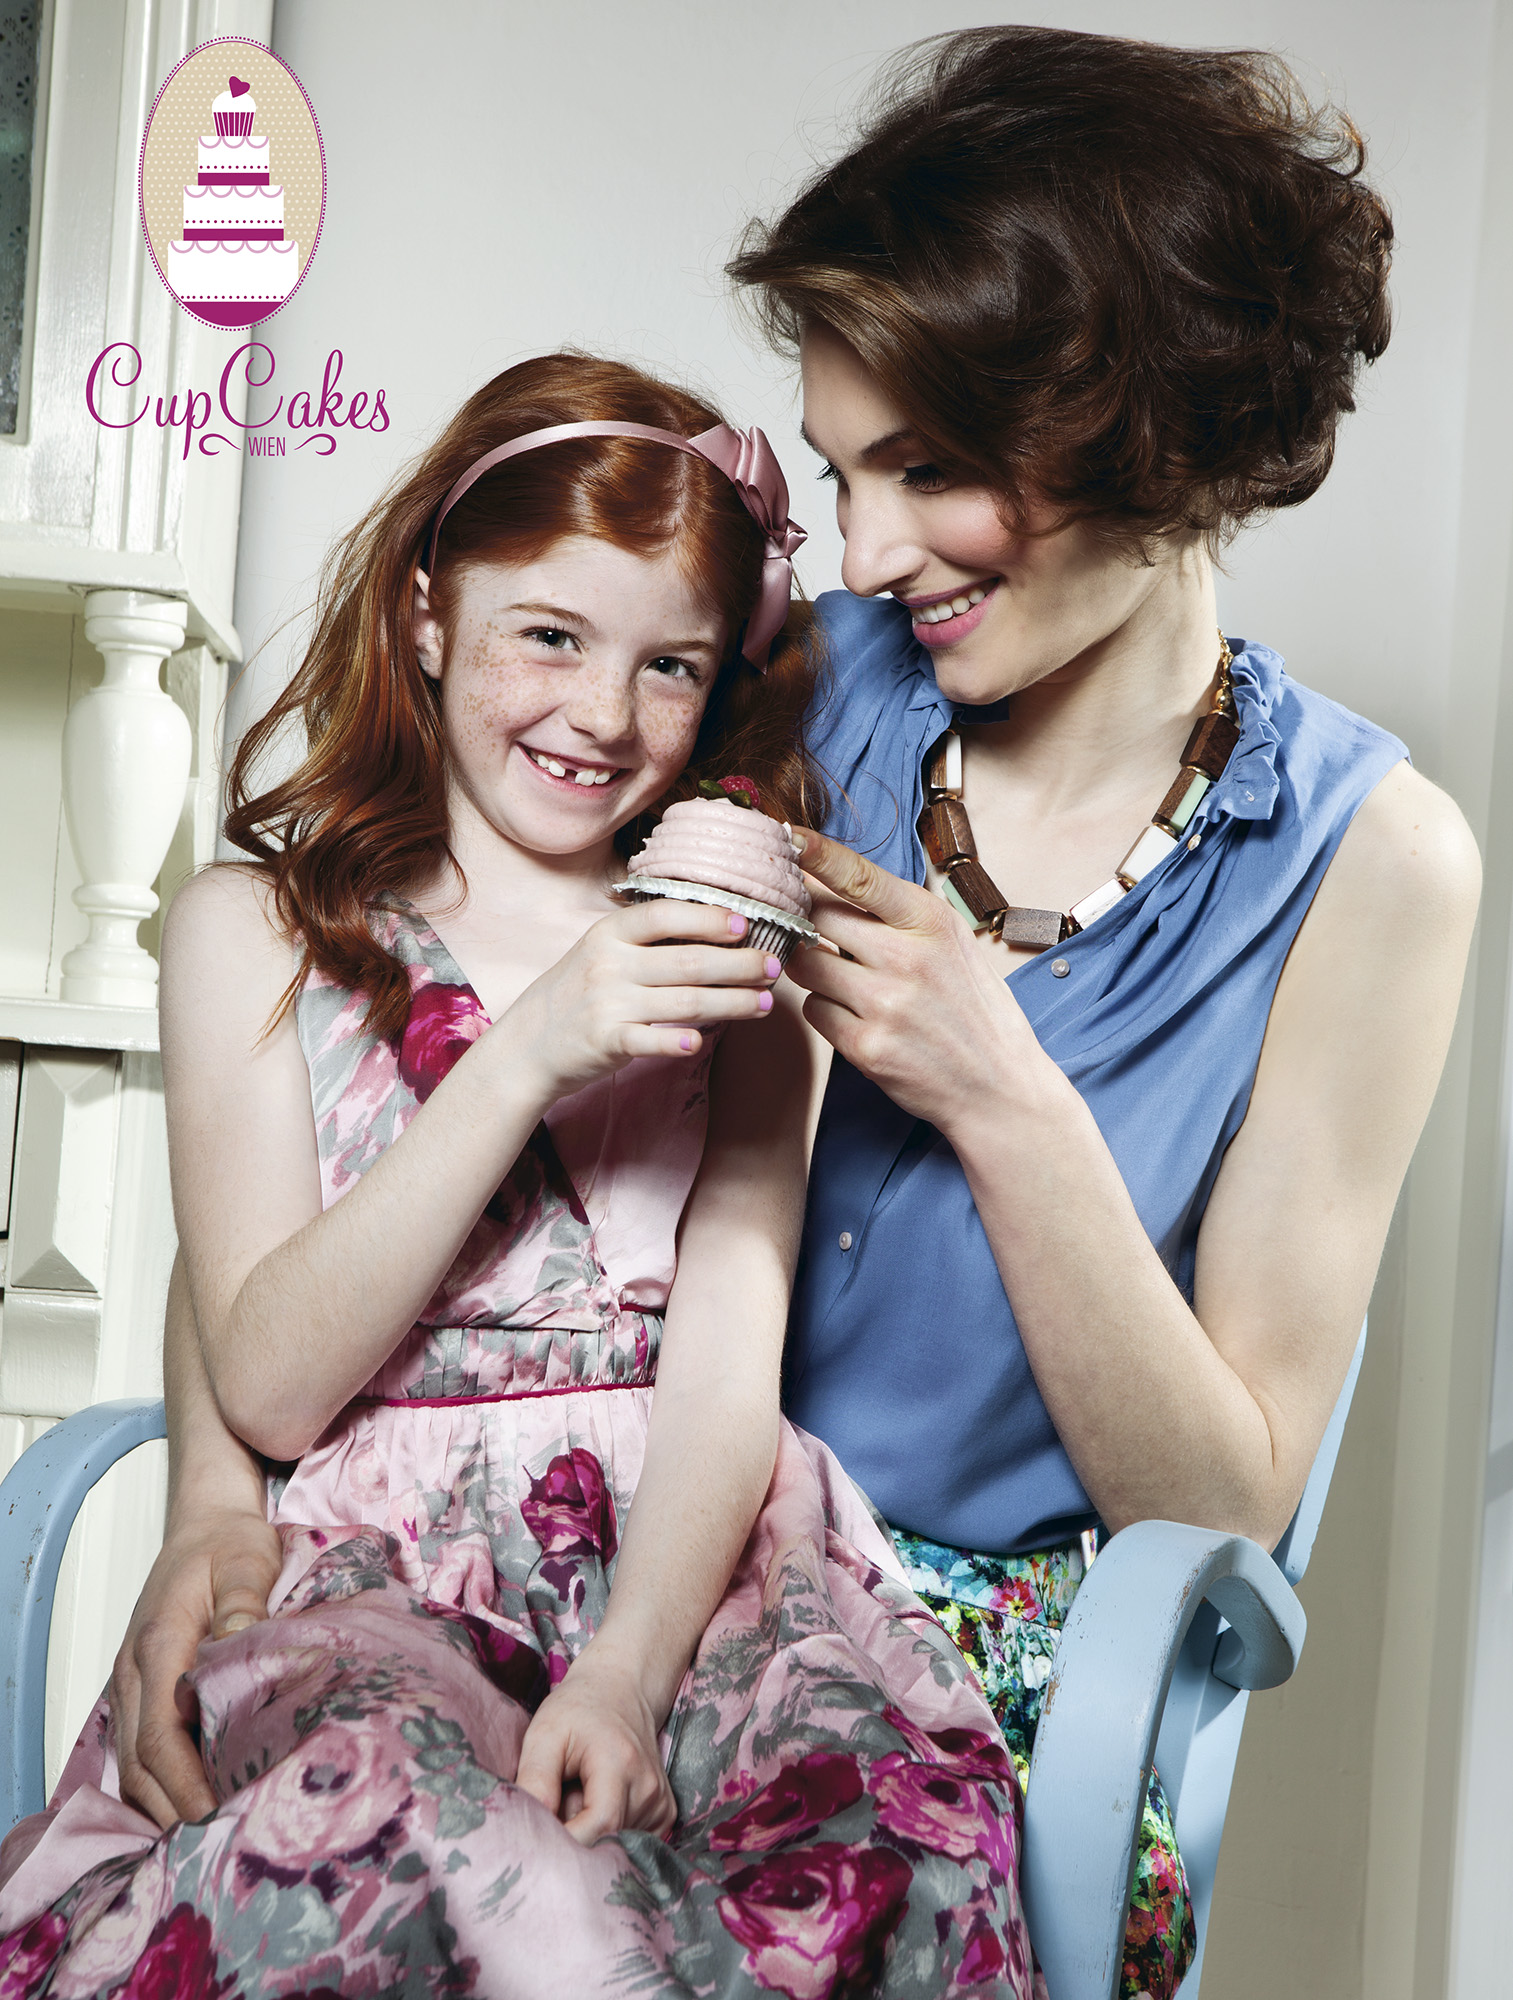 Ilve Little girl and mum eating cupcake